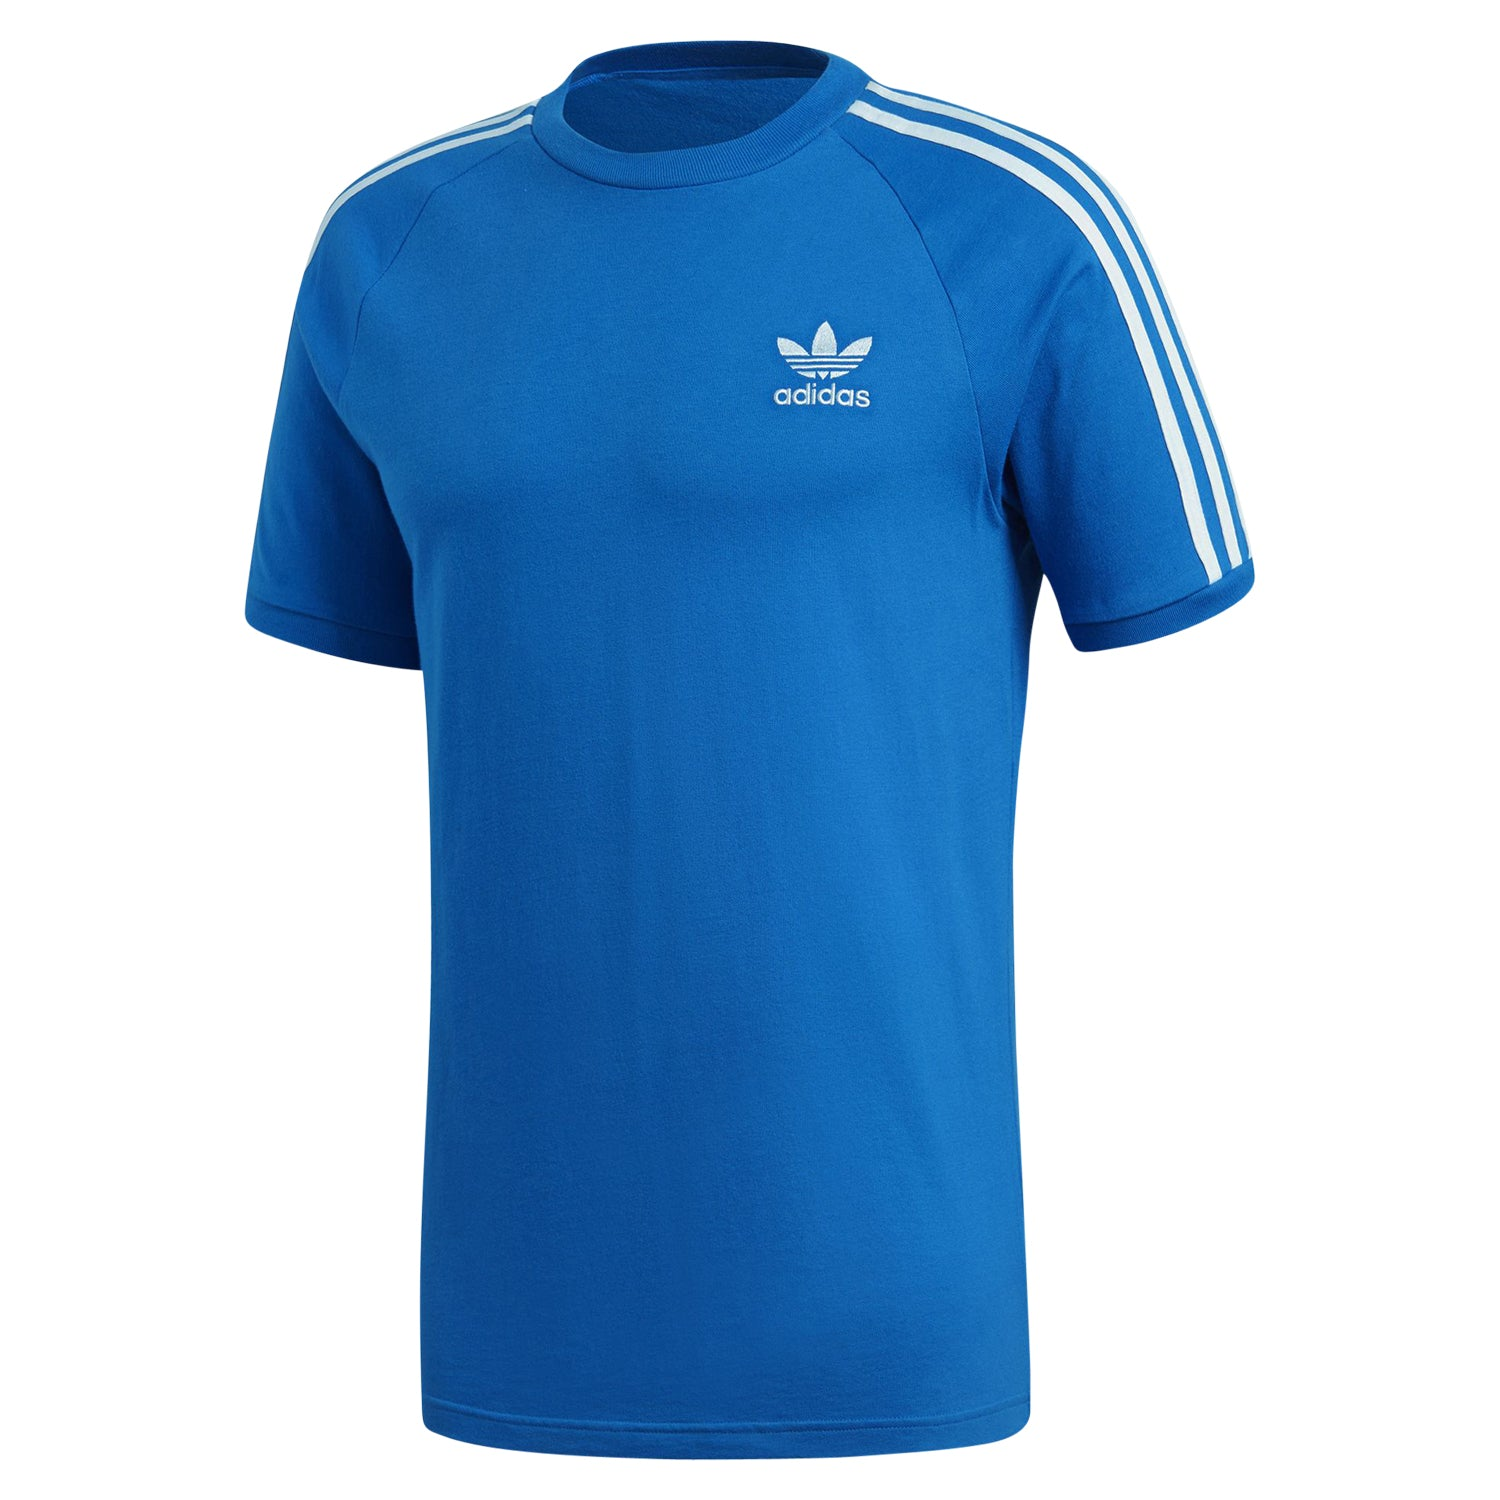 design intemporel 35b8f 9fb80 adidas Originals Men's 3 Stripe T-Shirt - Bluebird